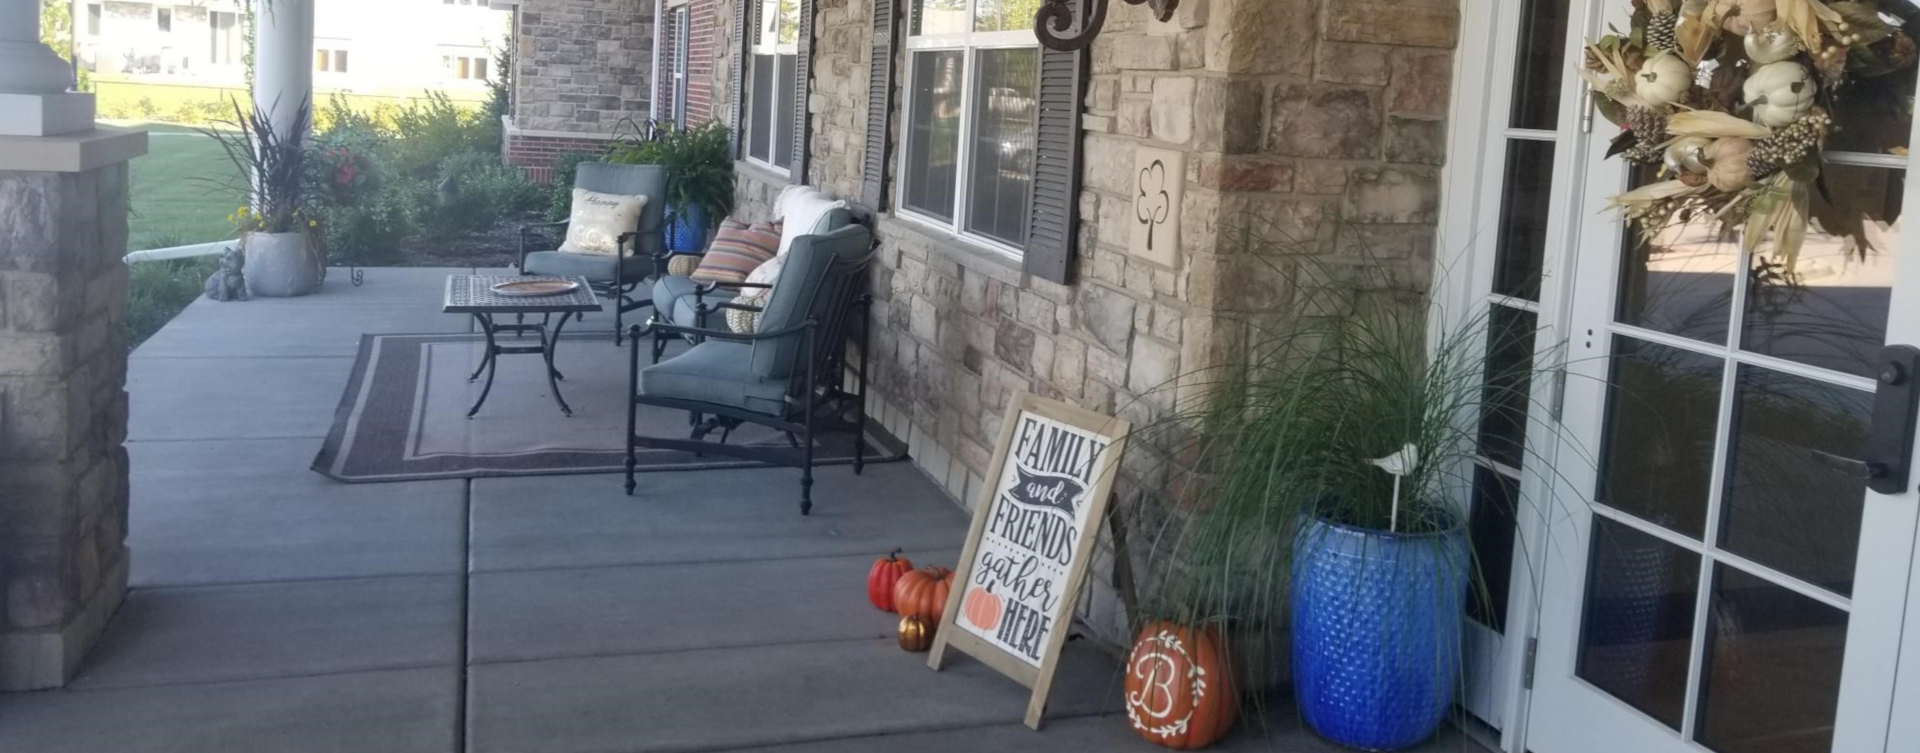 Relax in your favorite chair on the porch at Bickford of Tinley Park